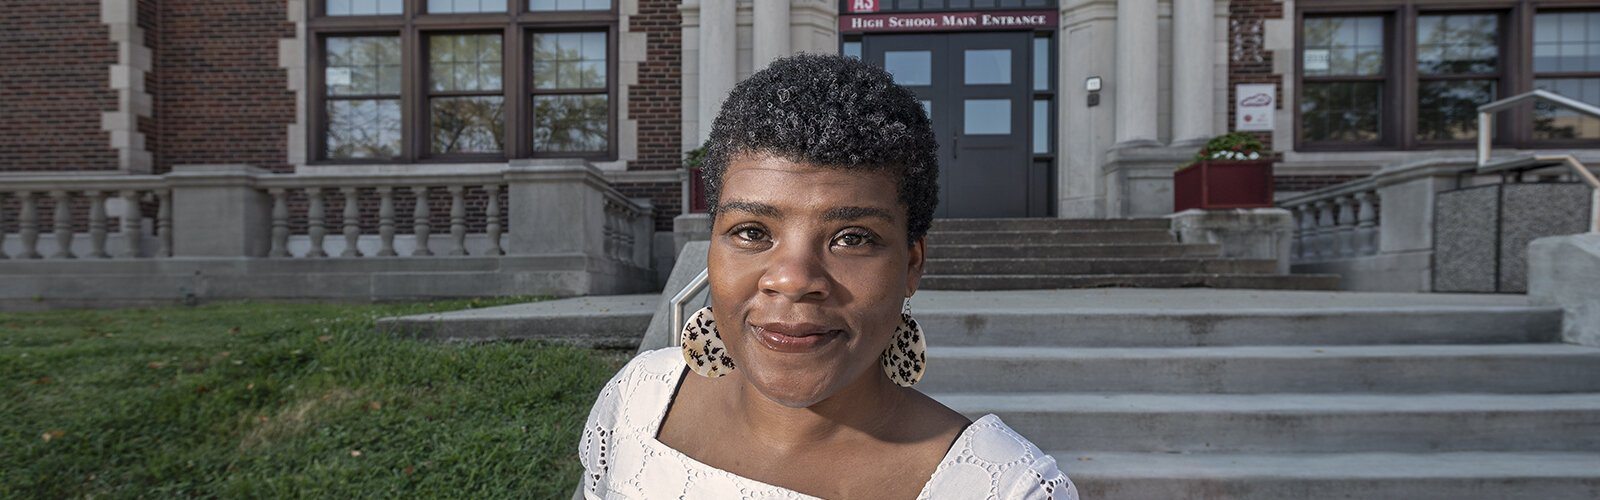 Anissa Lewis grew up in Covington's Eastside neighborhood and returned after getting a degree at Yale.